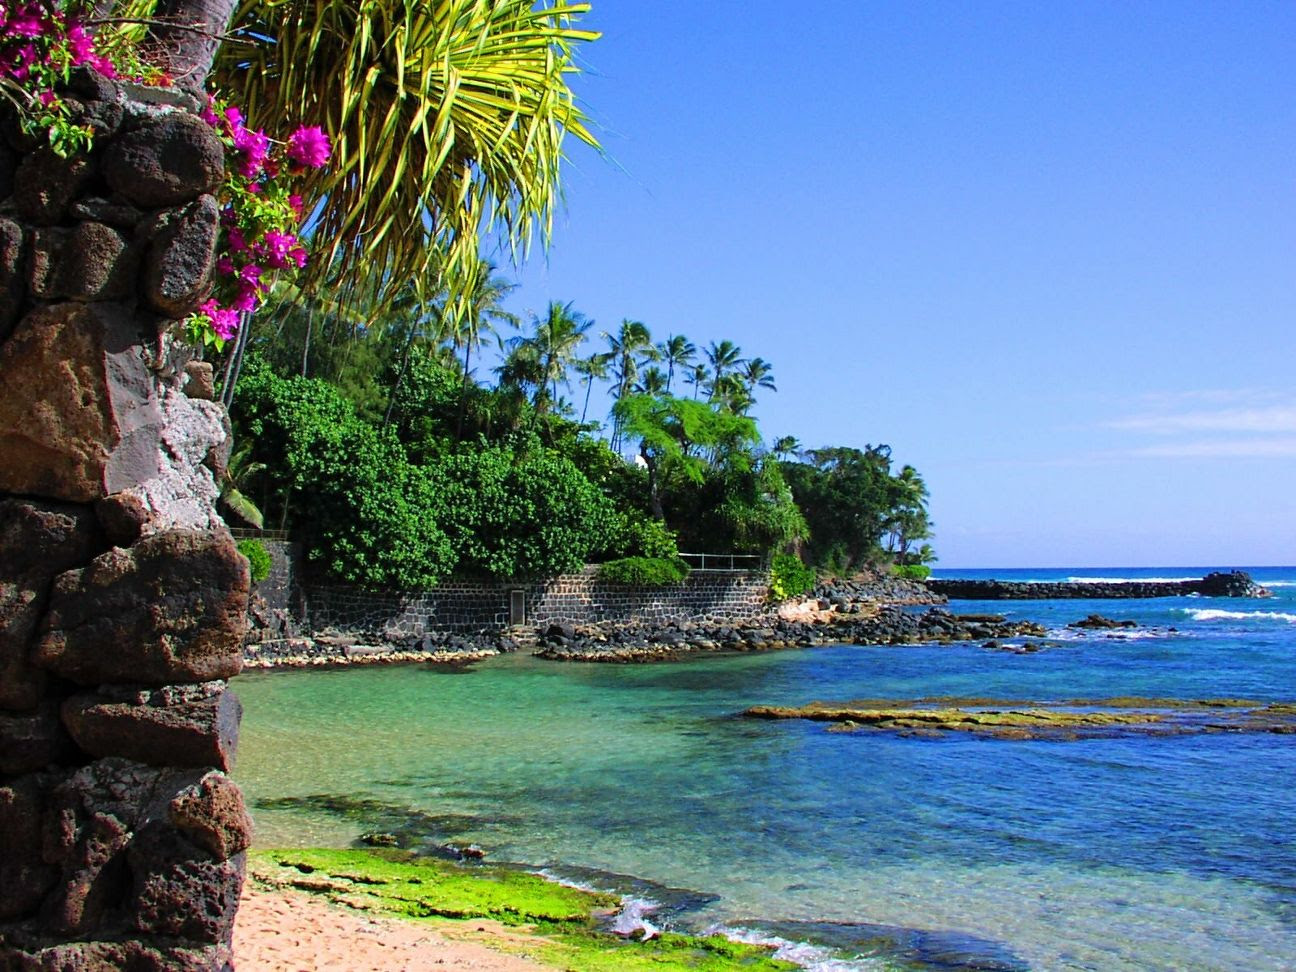 Hawaii All Inclusive Hawaii AllInclusive Hawaii All